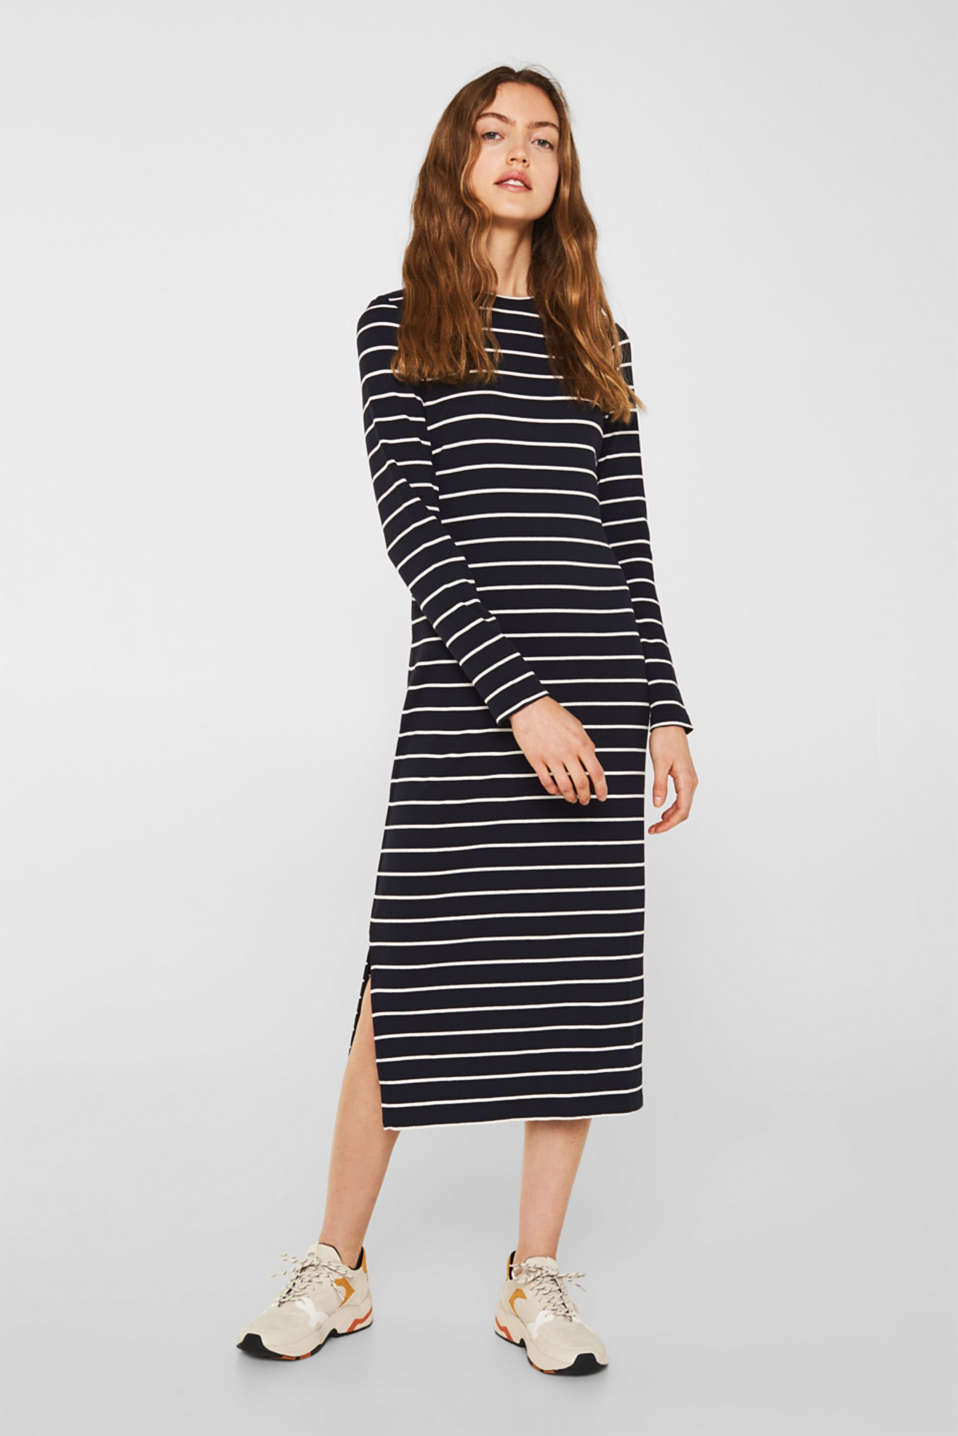 Stretch jersey dress with stripes and texture, NAVY, detail image number 1